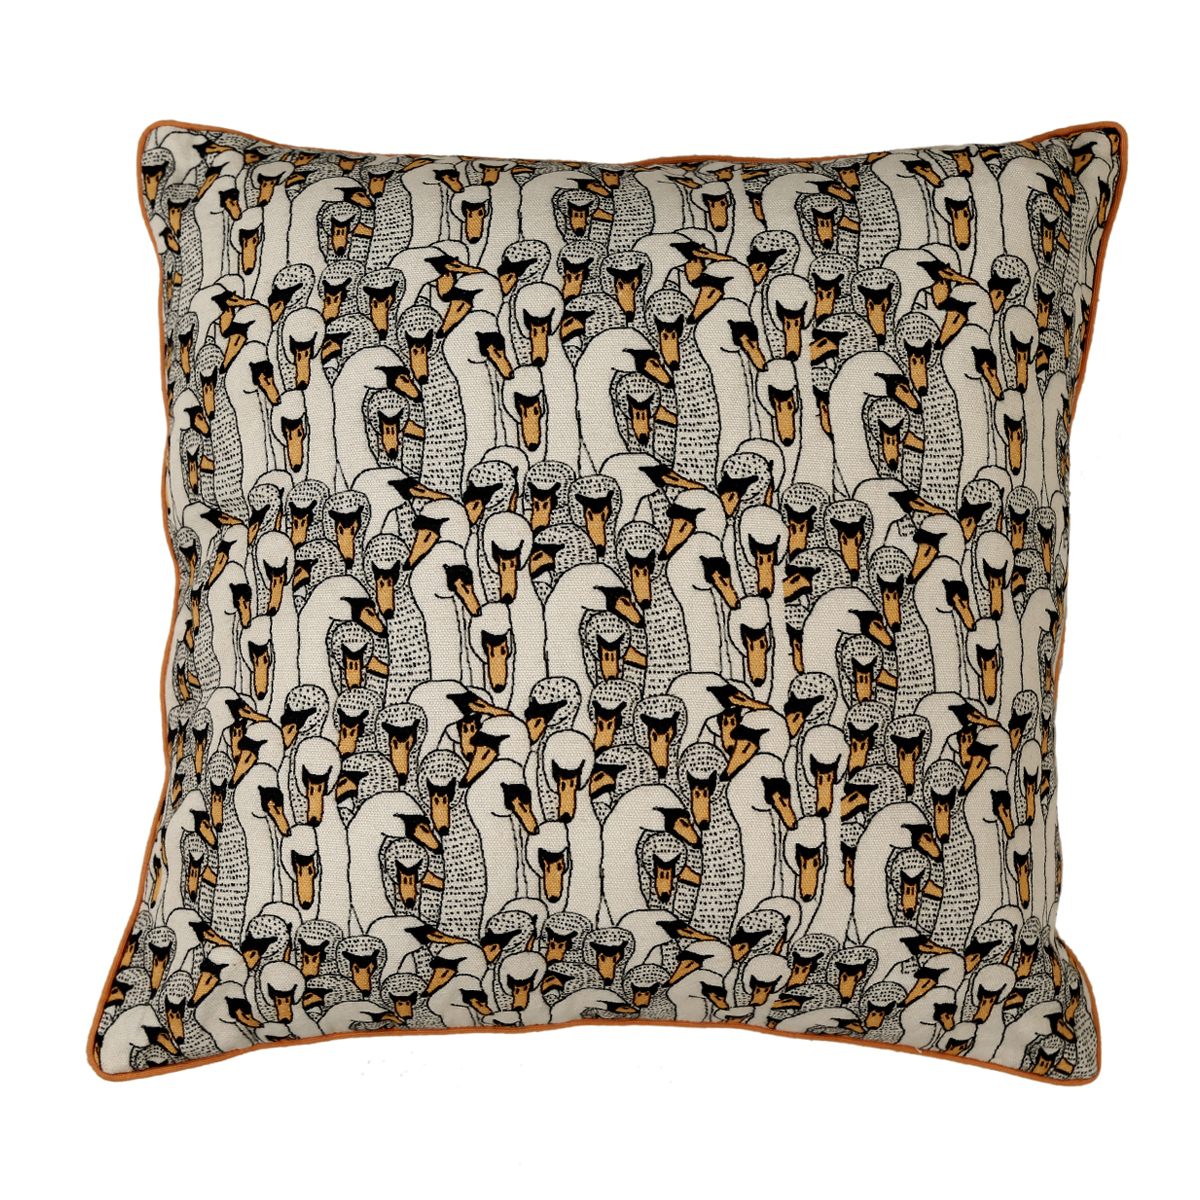 Duck Parade Cushion